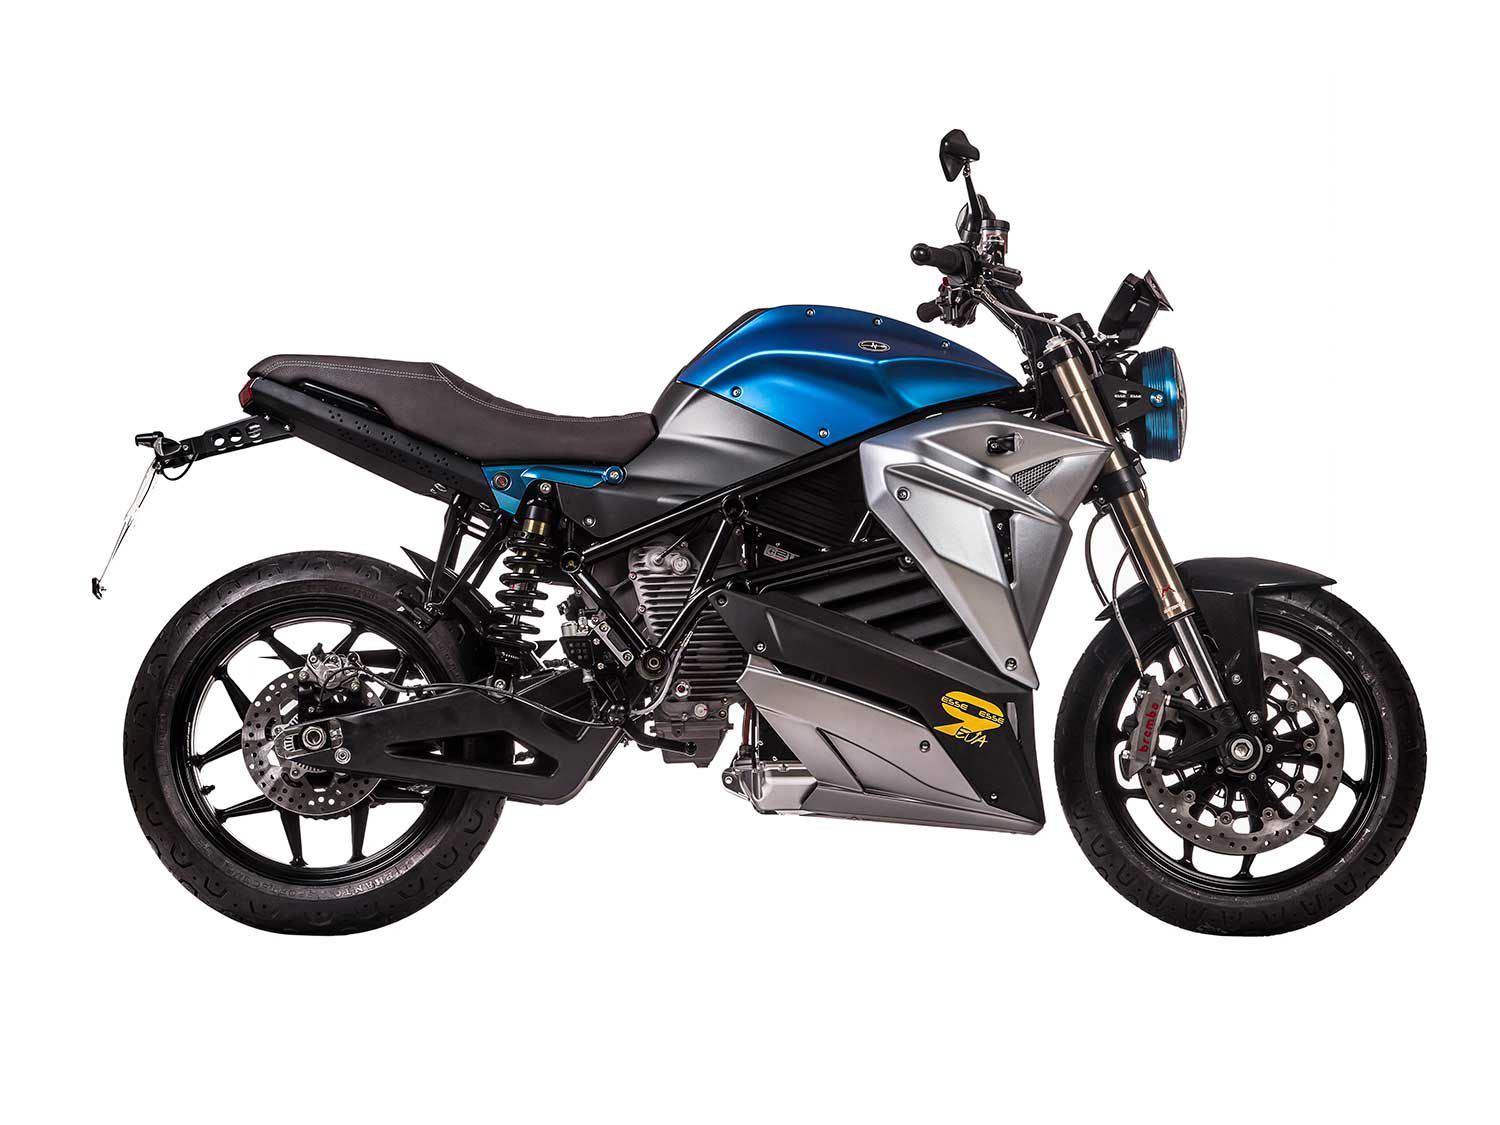 The 2020 Energica EsseEsse9+ represents the classic motorcycle for Energica. It's based on the same platform as the other models but its tall bars and comfortable riding position make it a perfect choice as a commuter.